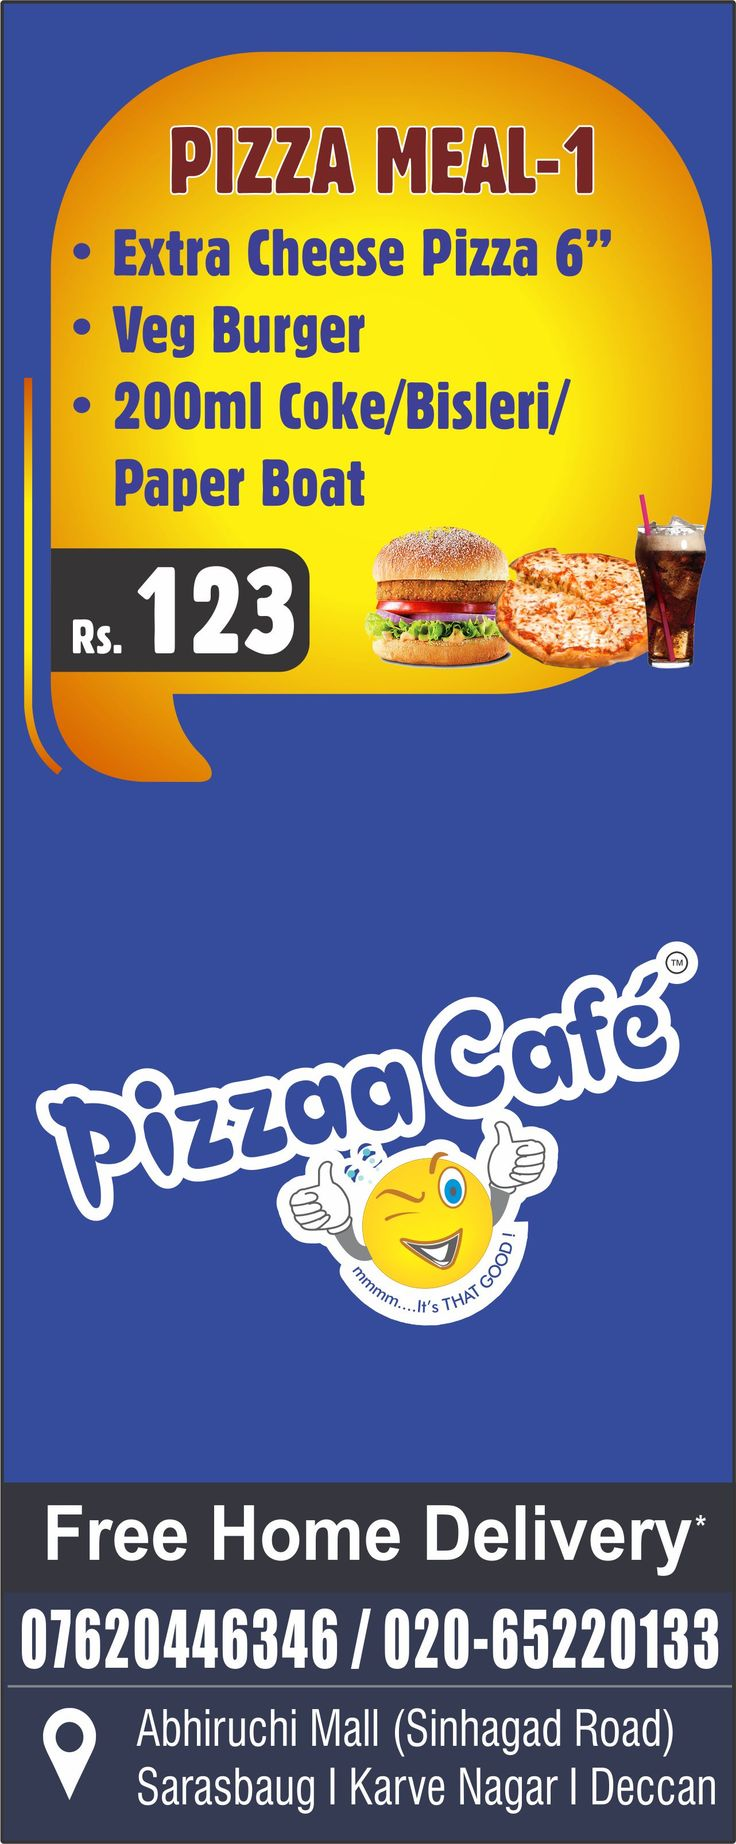 www.pizzaacafe.in Pizza Meal 1 #ExtraLargePizza #VegBurger #Coke #PaperBoat